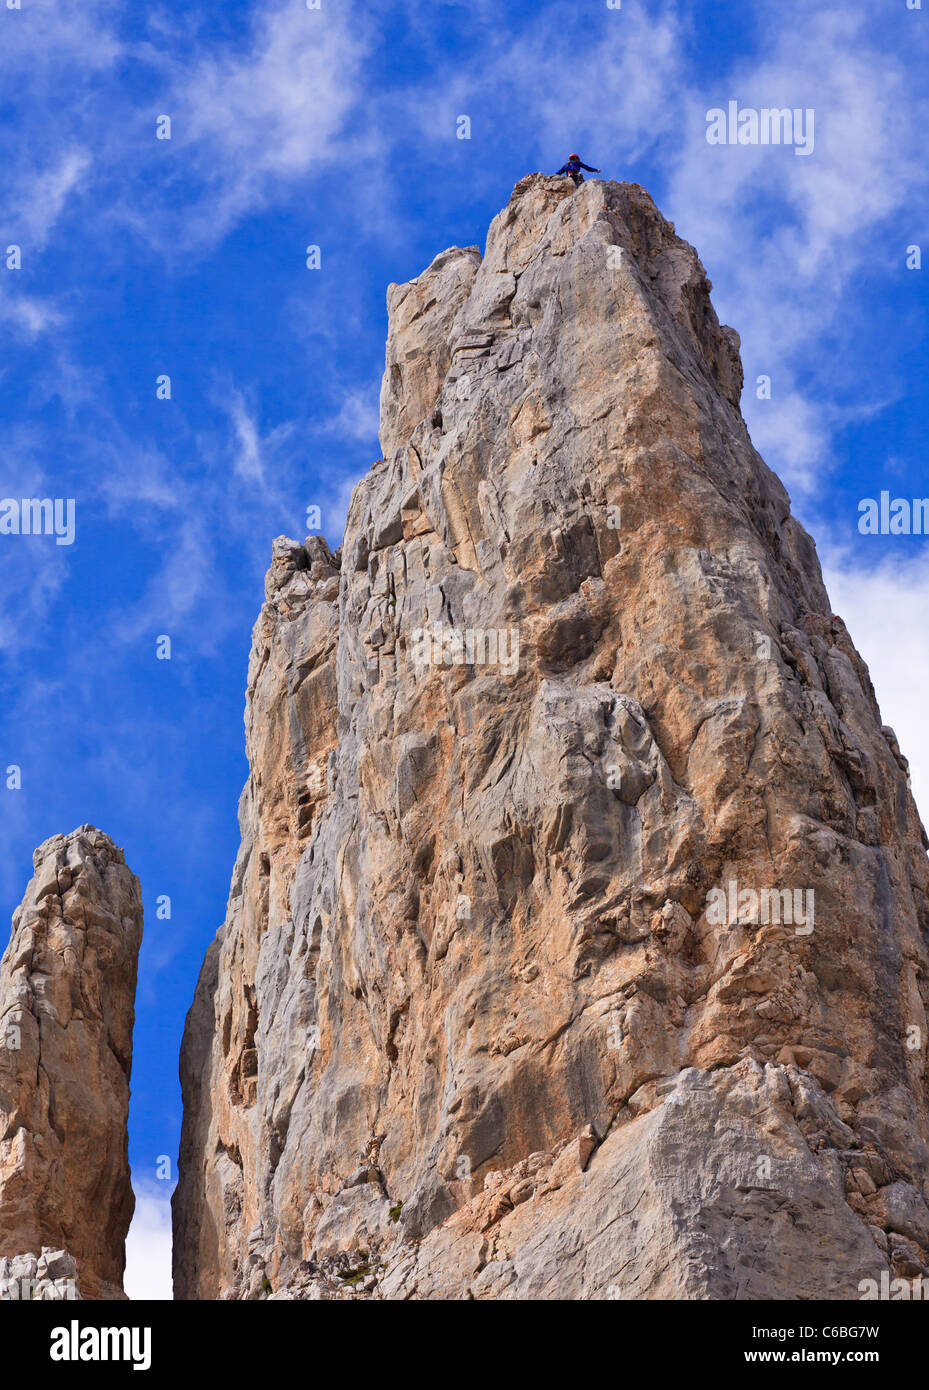 Climber on top of a limestone rock in Picos de Europa, Spain - Stock Image